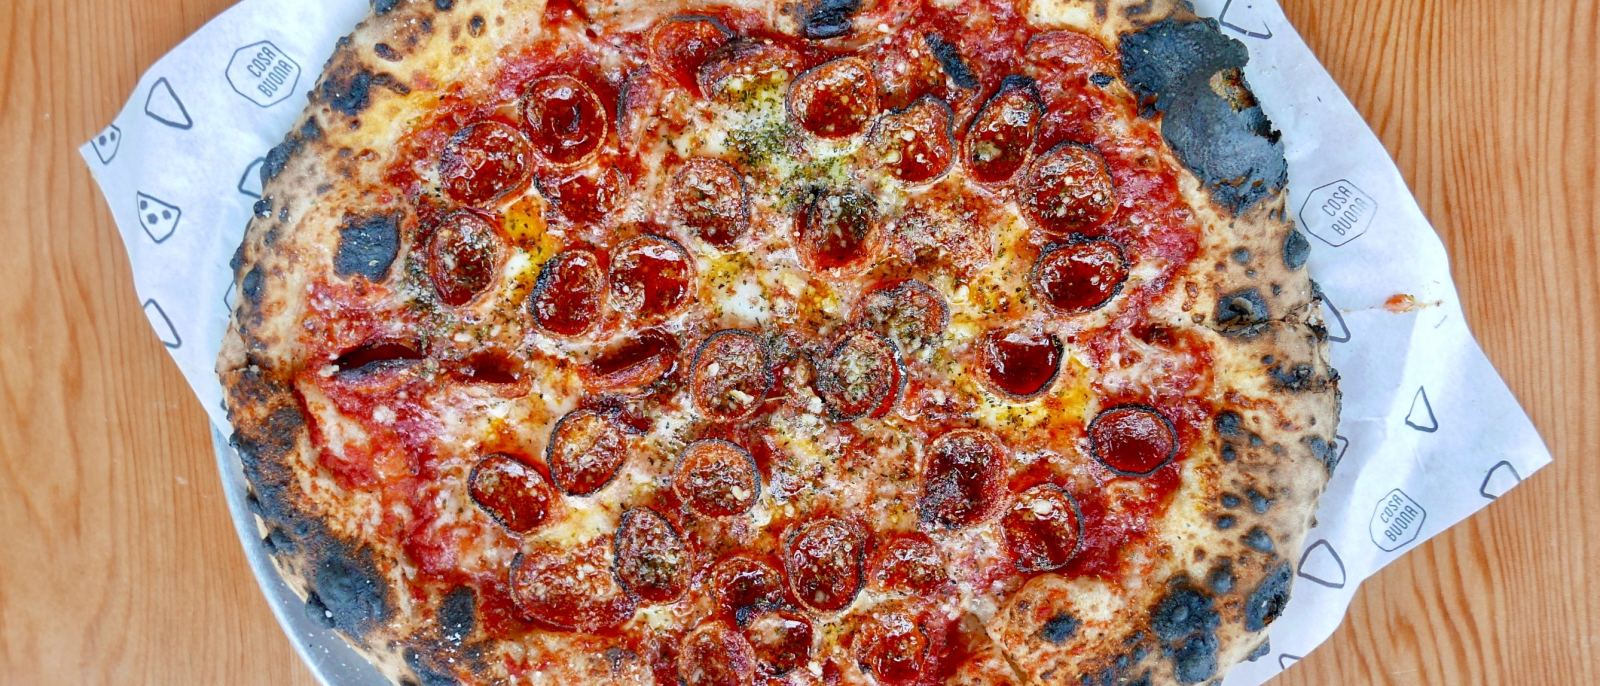 Pepperoni pizza at Cosa Buona | Photo: Joshua Lurie